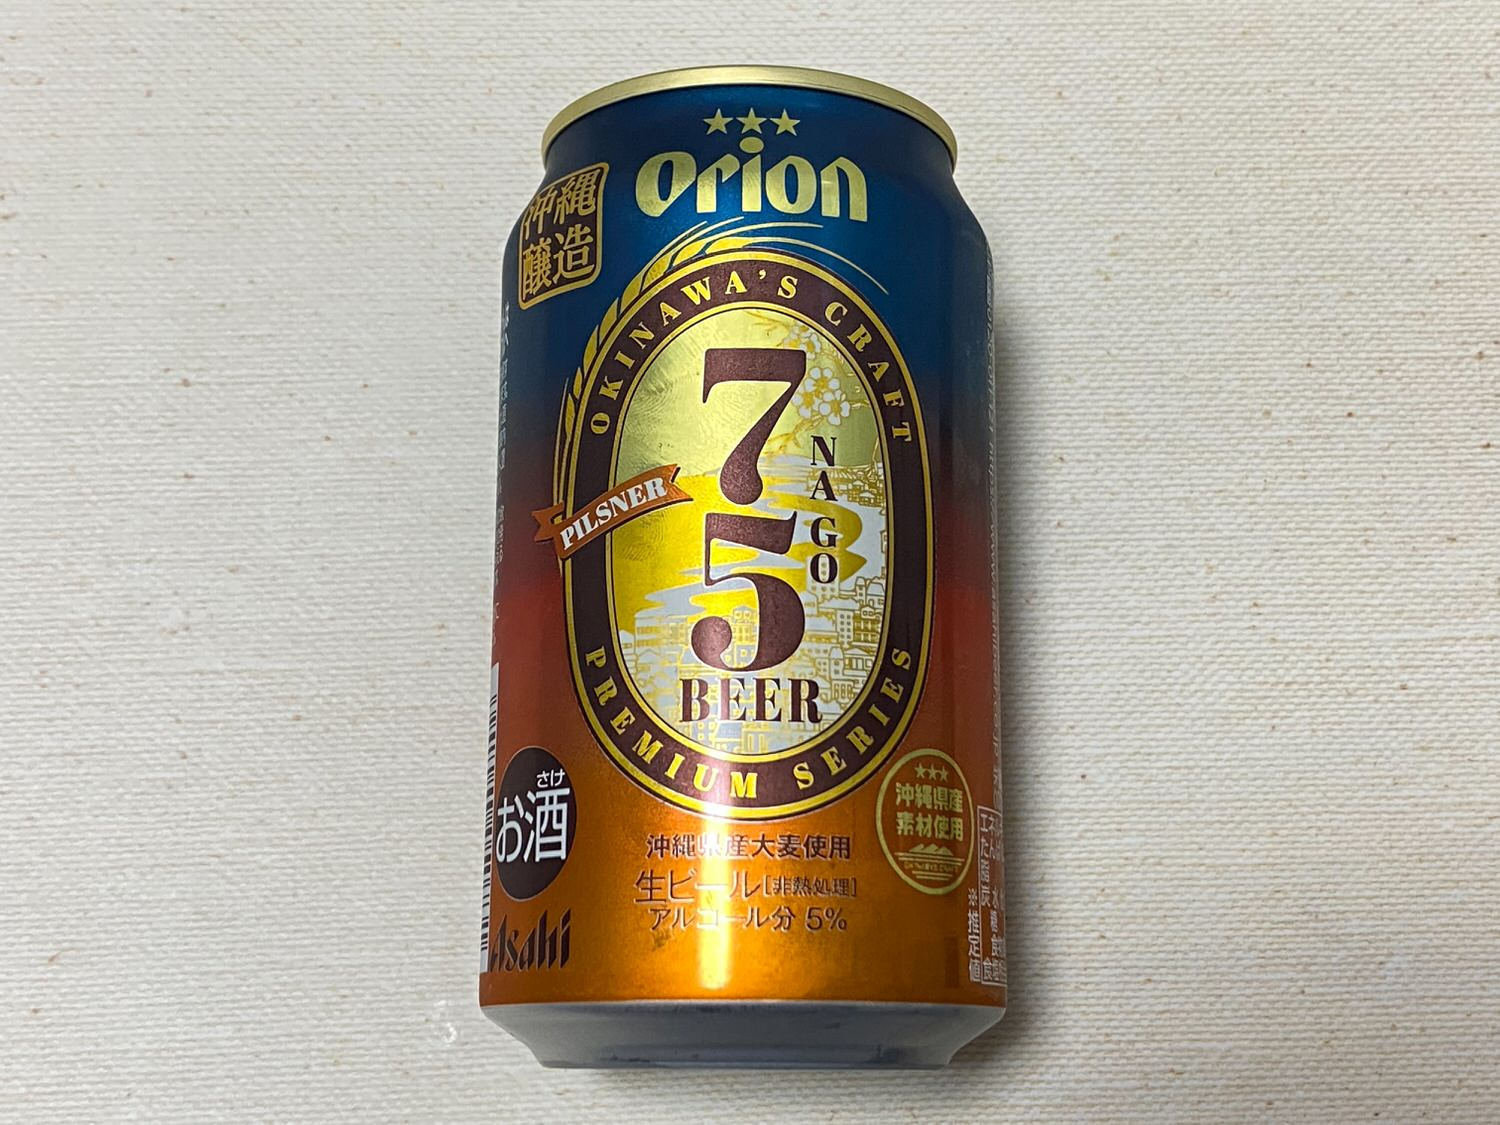 Orion 75 beer 04 04